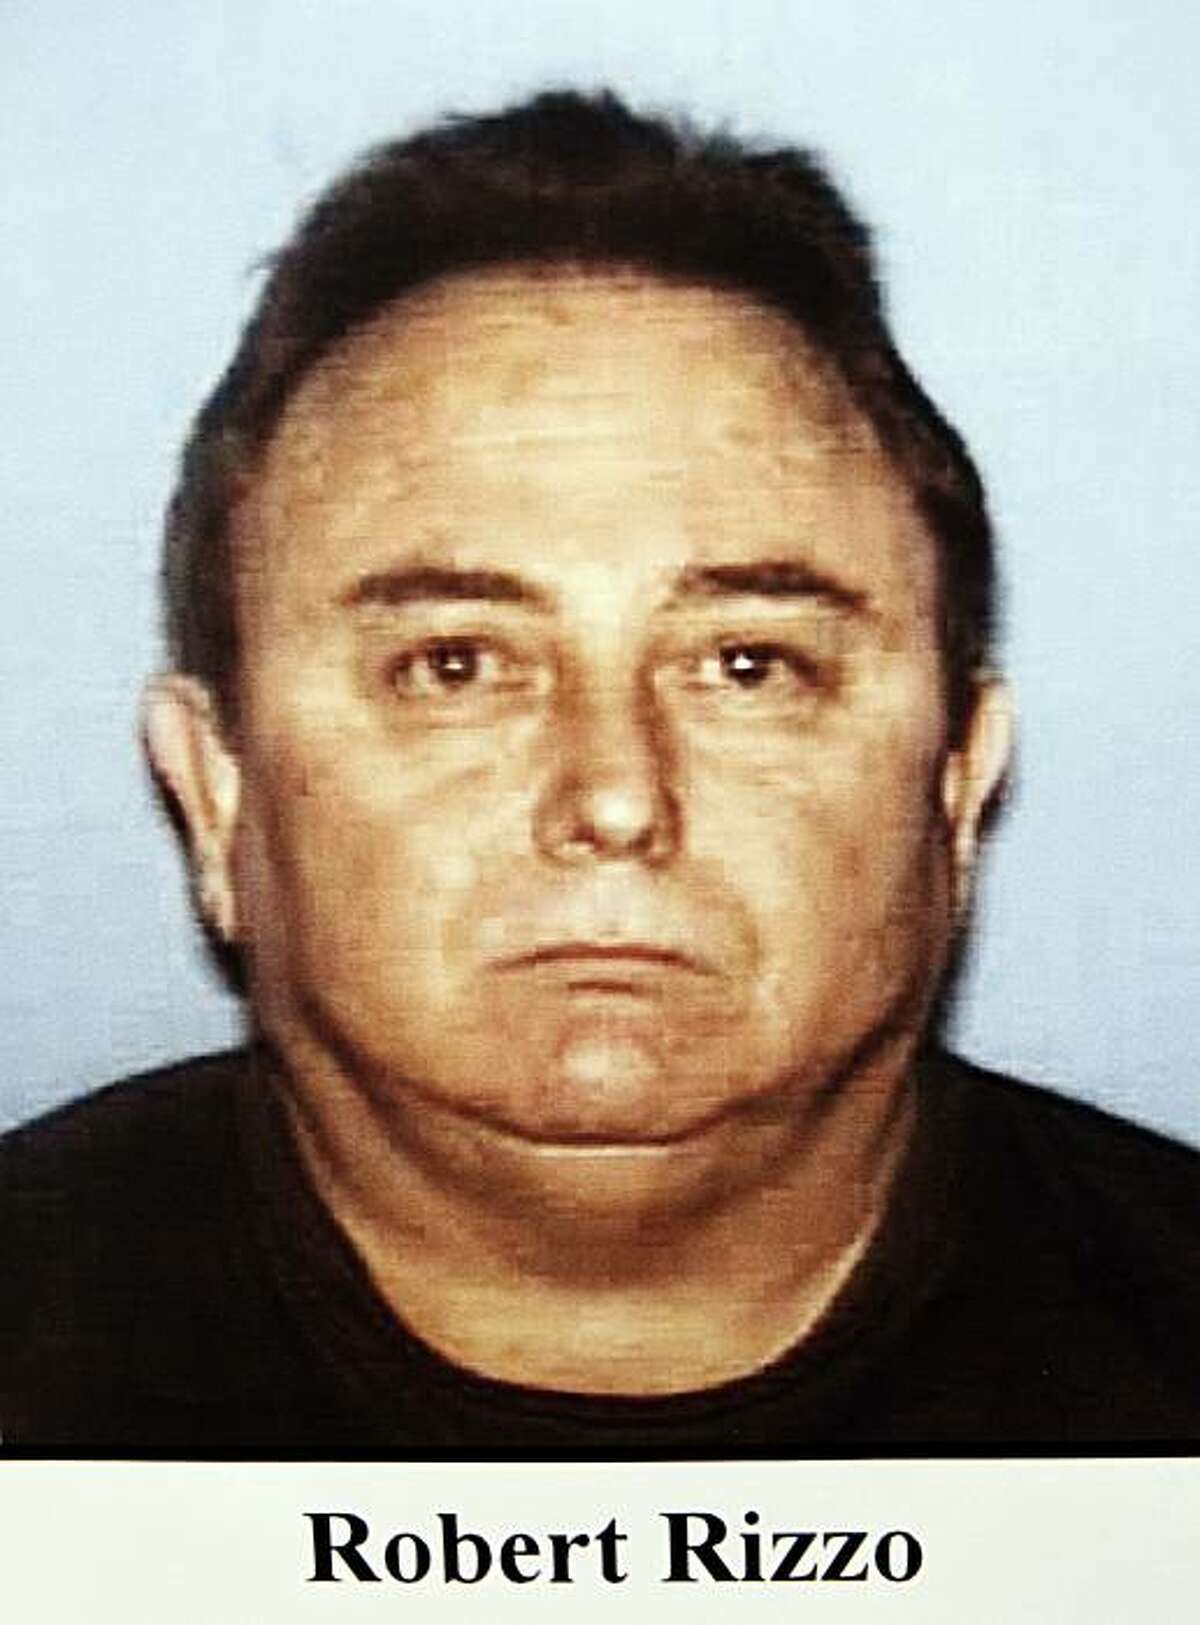 This image provided by the Los Angeles Police Department and displayed during a District Attorney's news conference Tuesday Sept. 21, 2010 shows ex-Bell city manager Robert Rizzo who was arrested Tuesday over allegations of corruption, misuse of public funds and voter fraud.